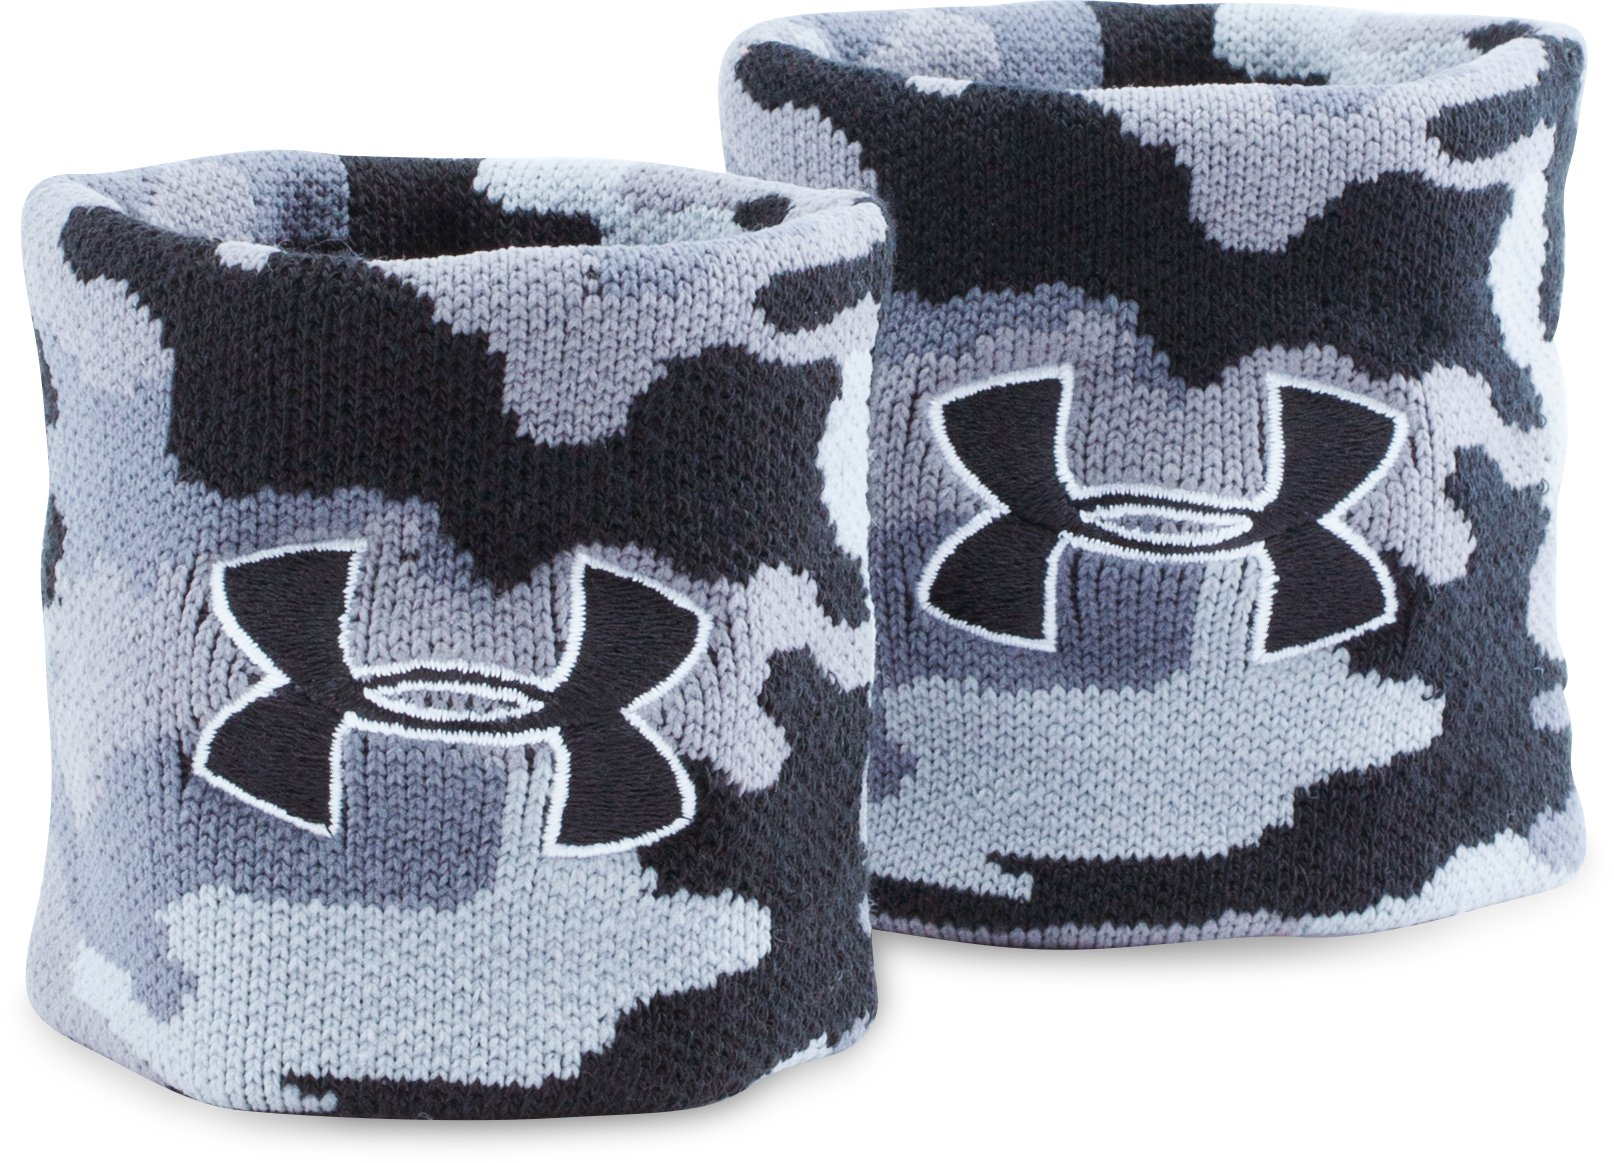 UA Jacquarded Wristbands, Black